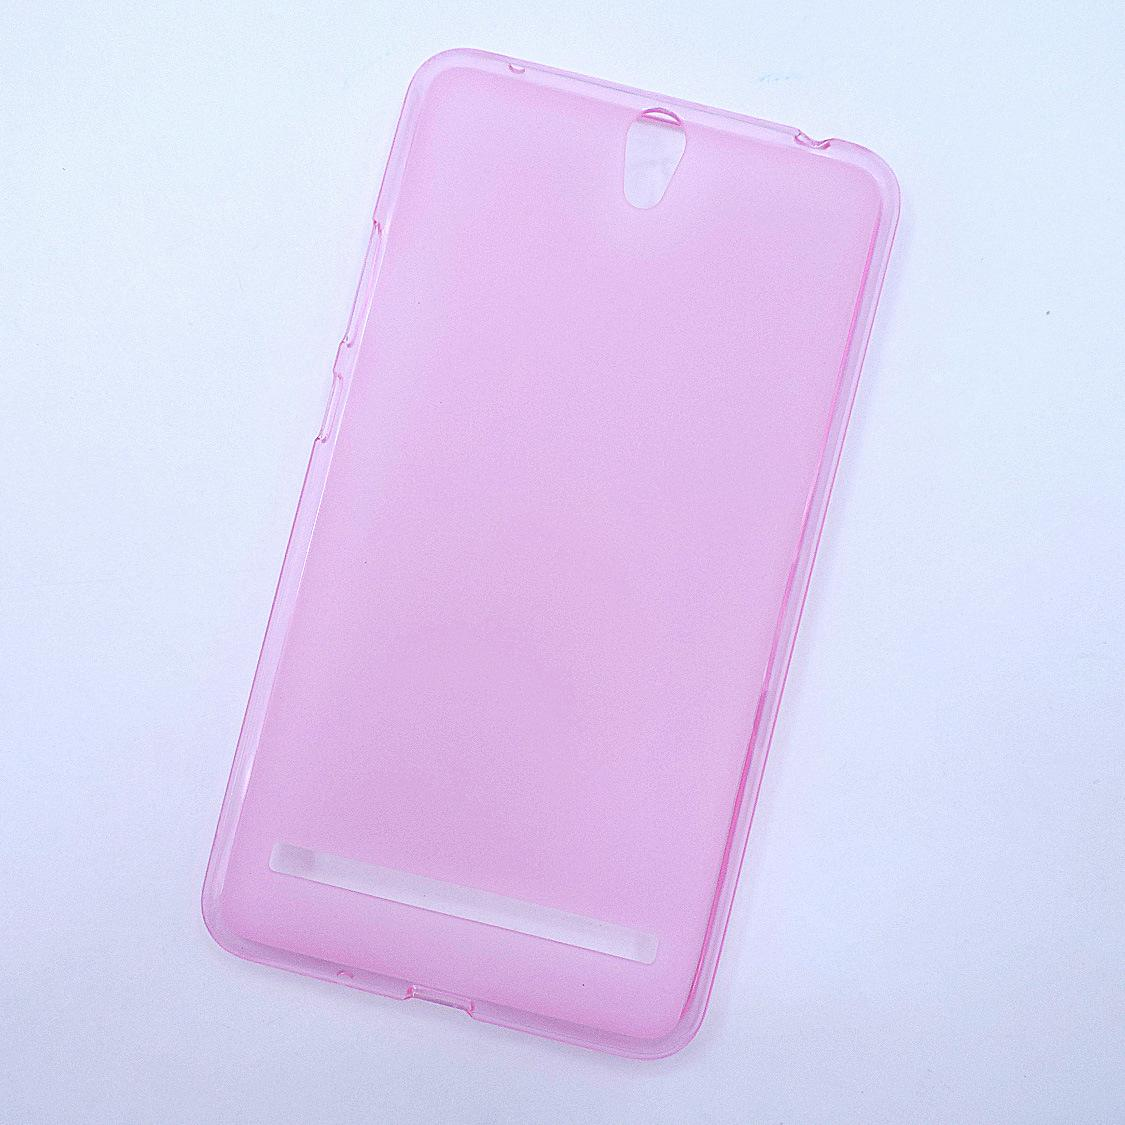 1 Pc/lot TPU Gel Belakang Case Sarung 6.9